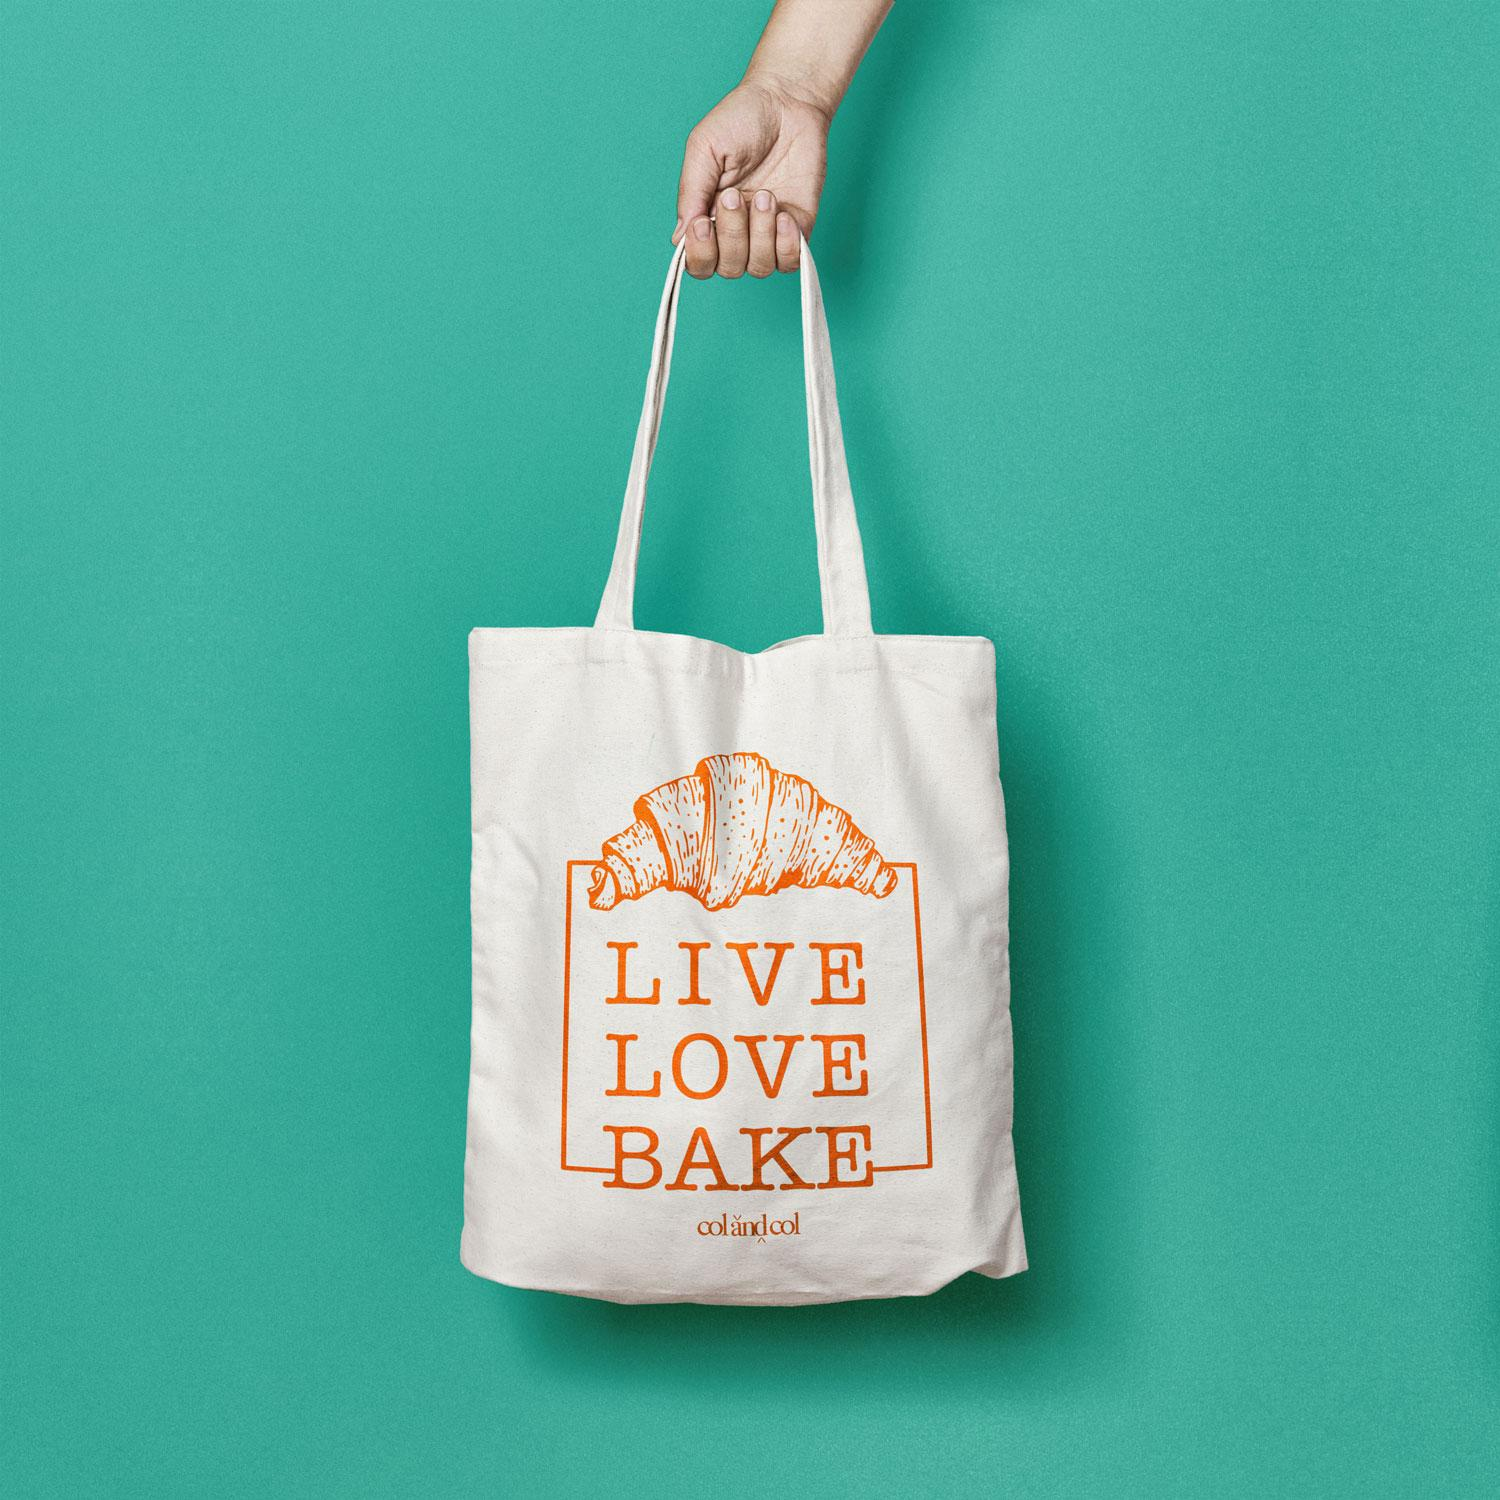 Tote bag - Love Libe Bake